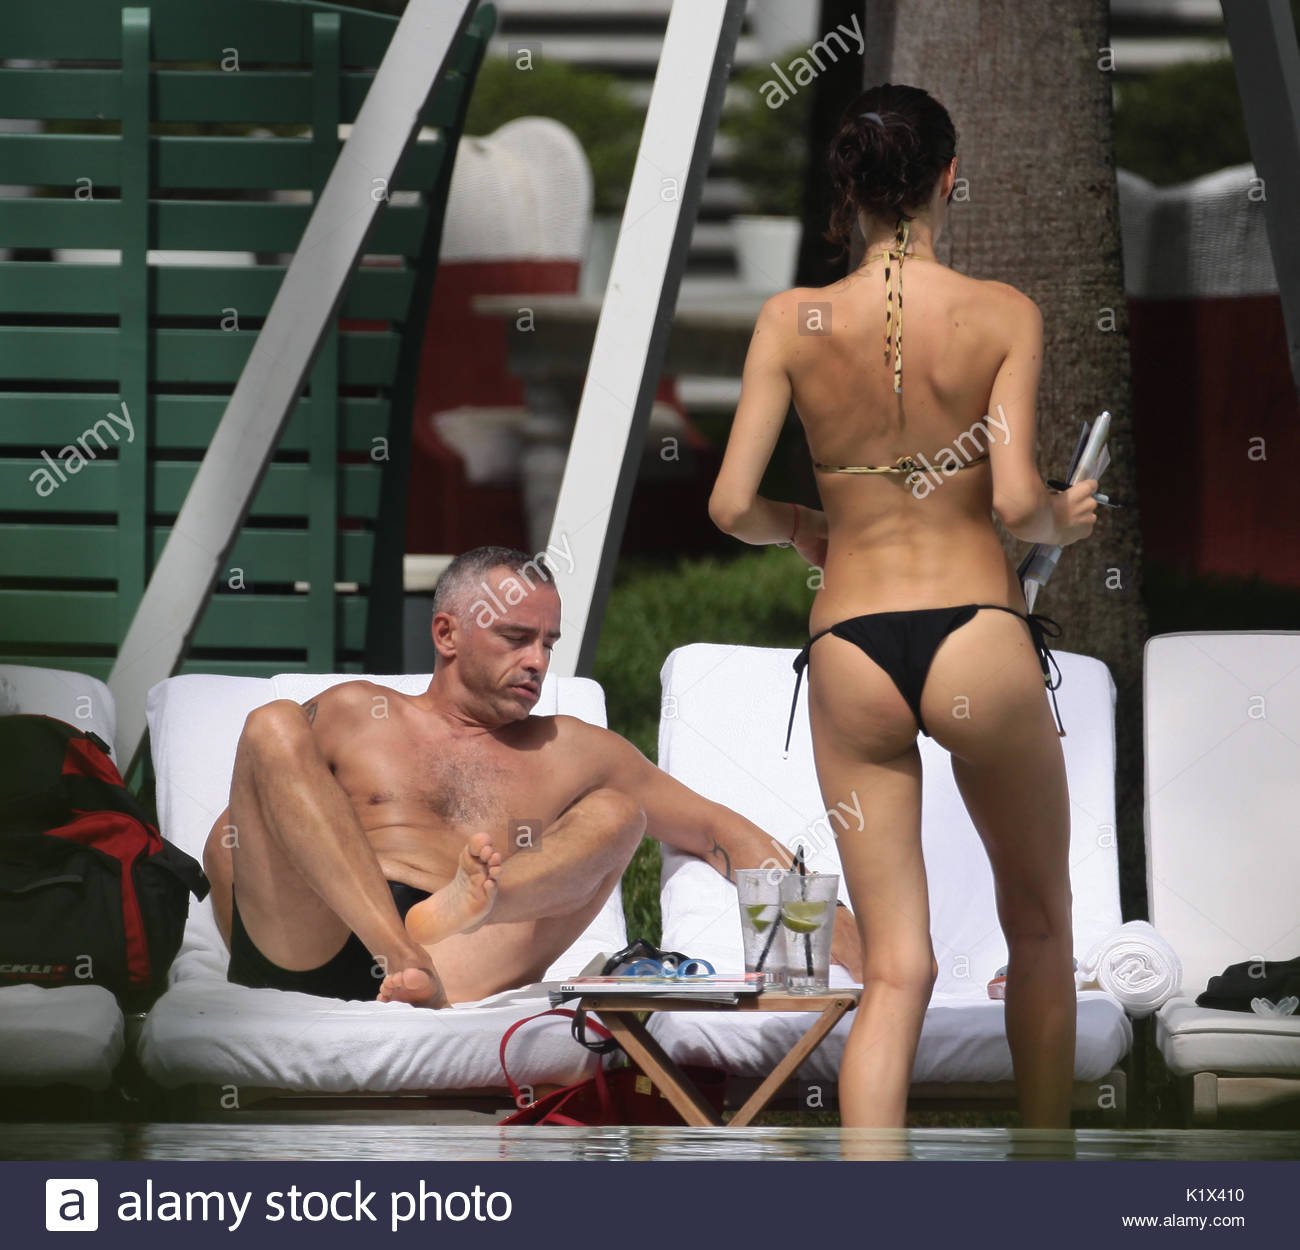 Eros Ramazzotti and Marica Pellegrinelli are seen relaxing, cuddling and  kissing in the pool of their luxury hotel during a holiday in Miami Beach.